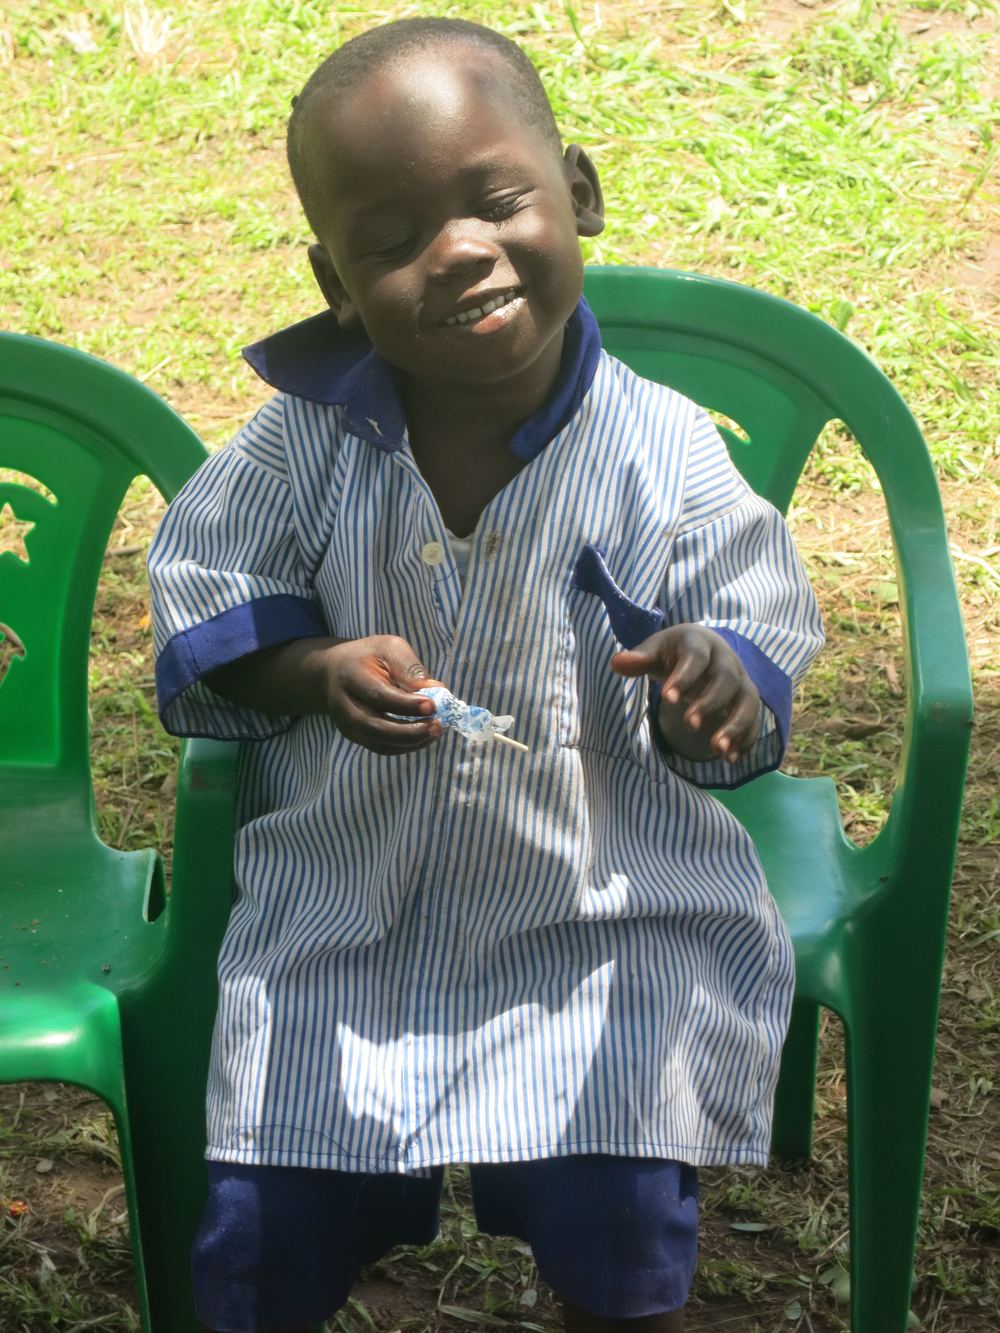 Meet Brian, one of the youngest at the school